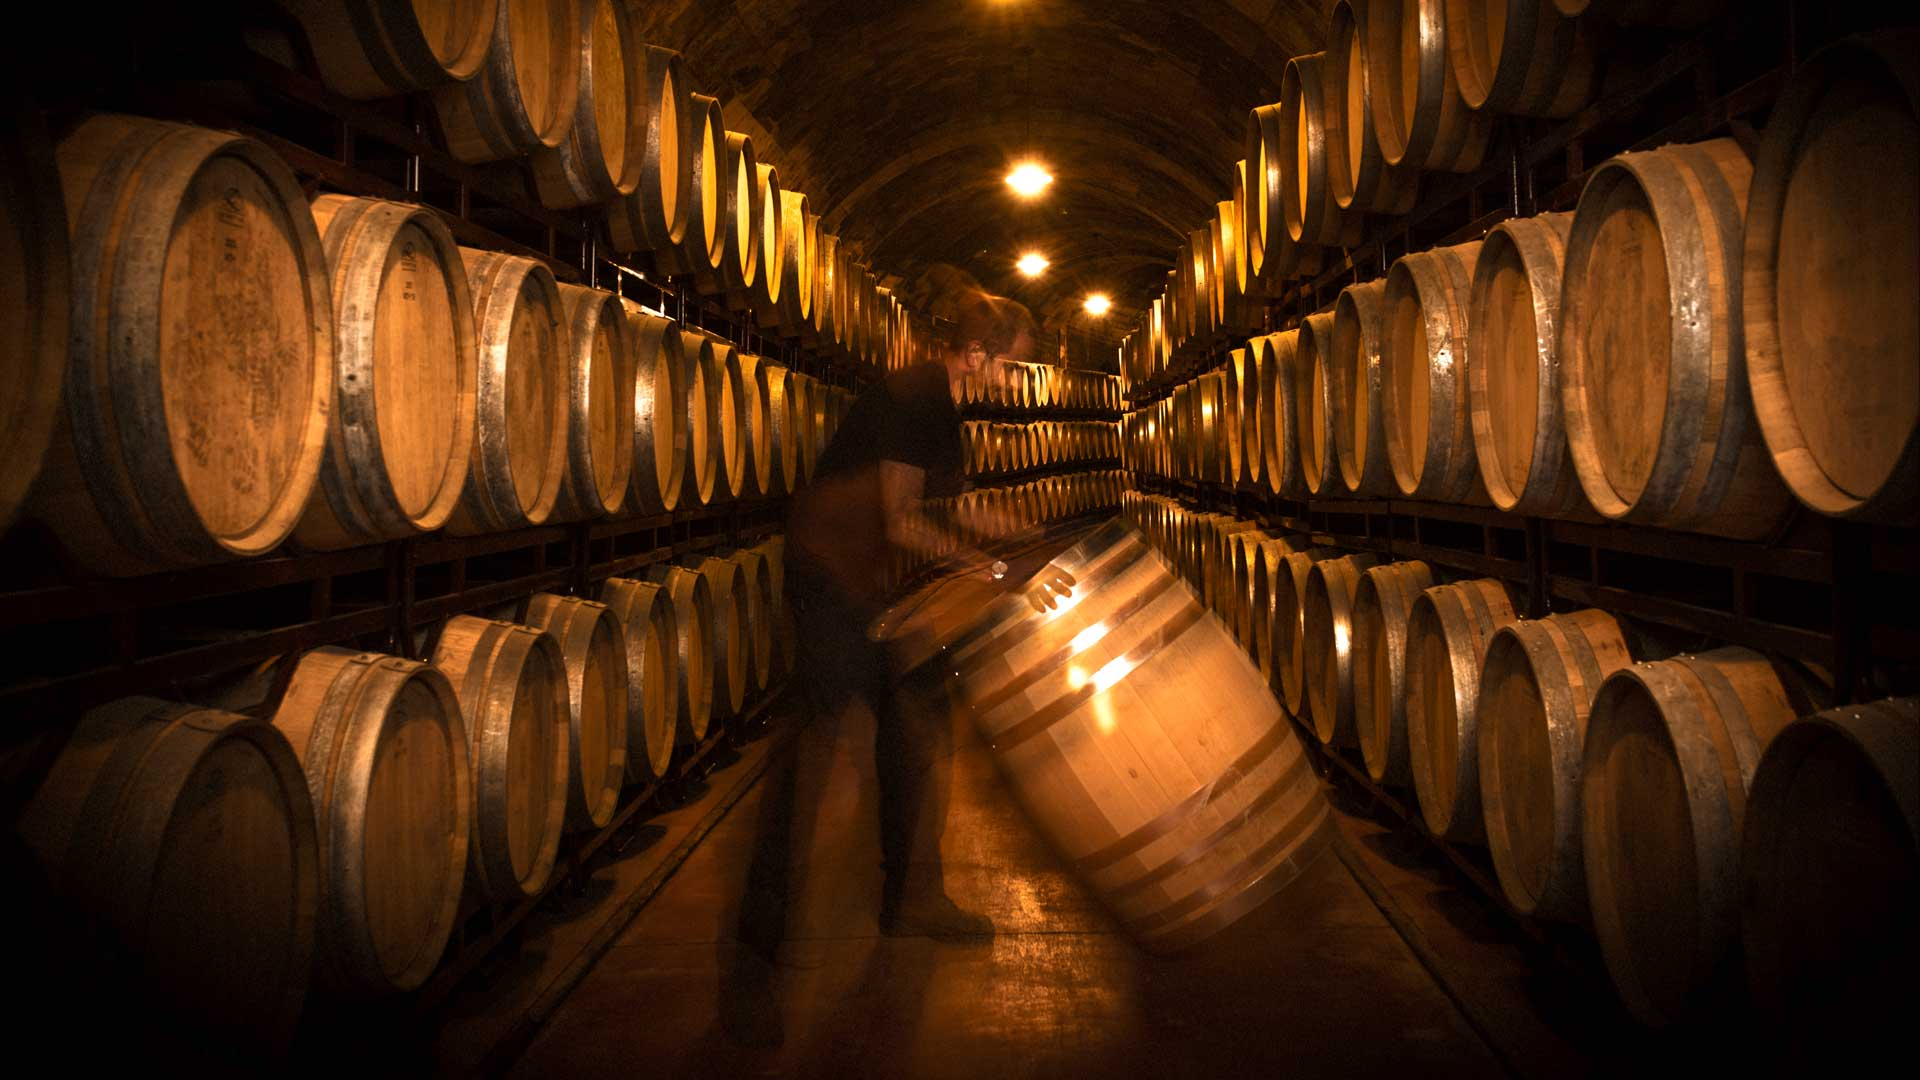 bodegas vinicola real barrel room